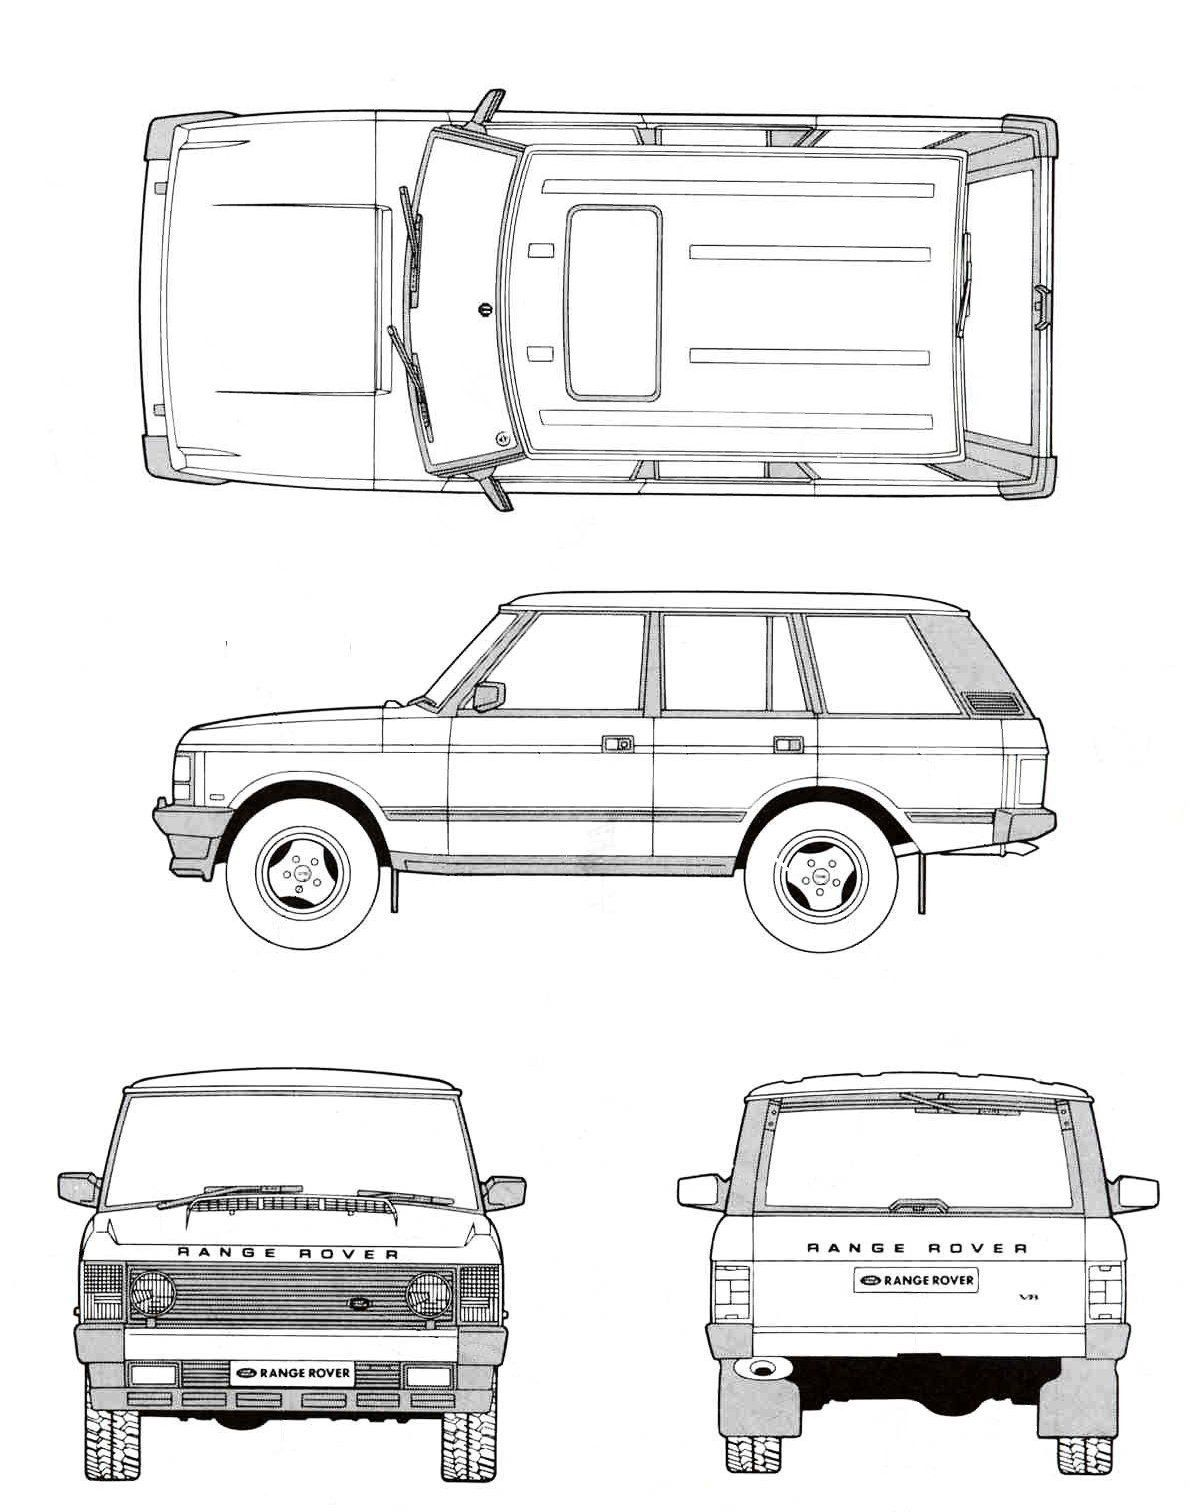 x5 suv auto electrical wiring diagramrange rover classic